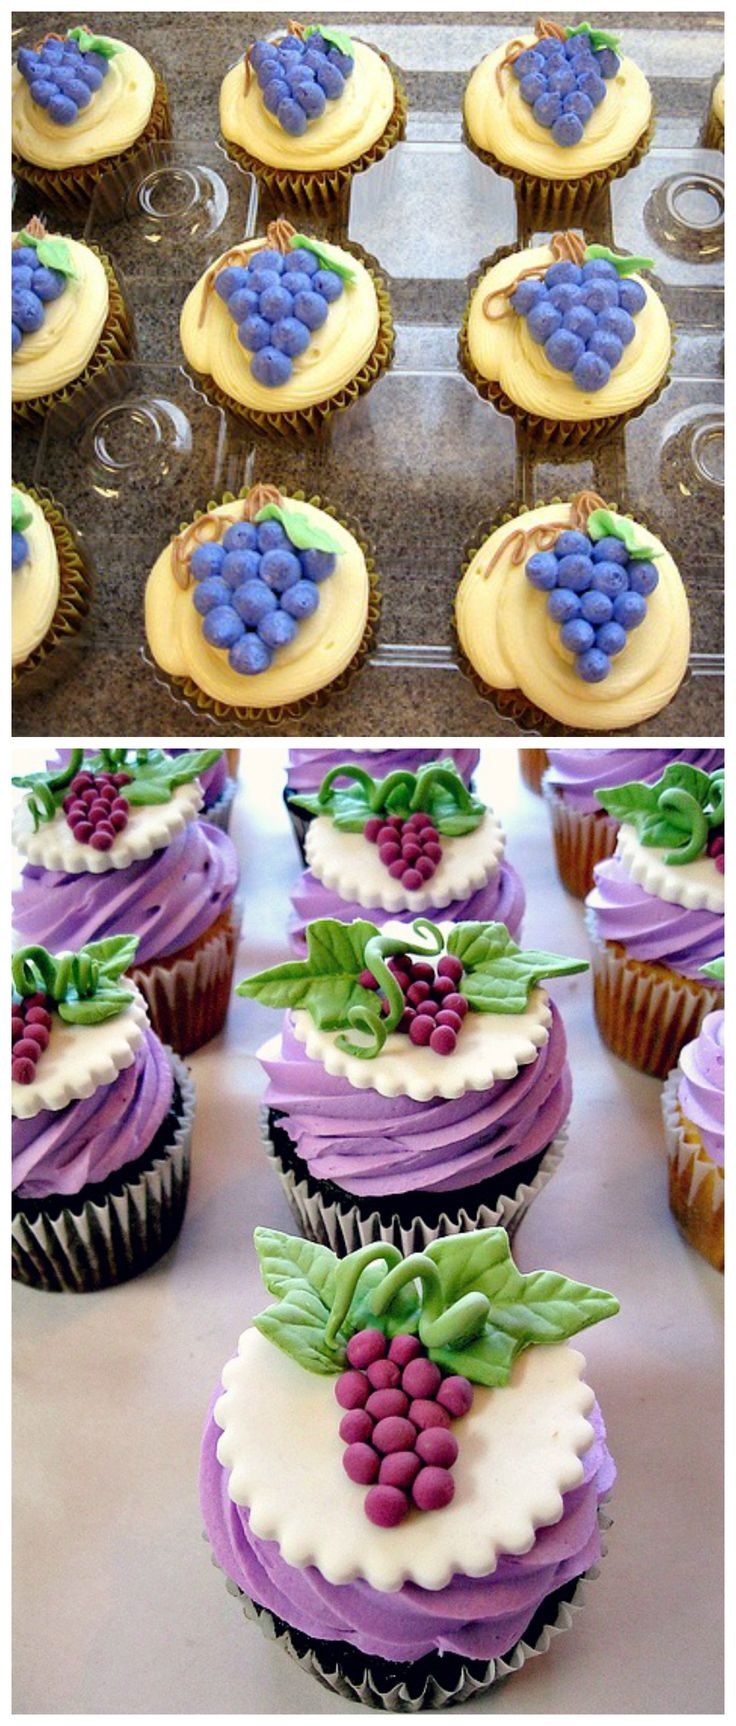 #Grape #cupcakeideas- pair with a glass of wine and some cheese! #GrapeCupcakes